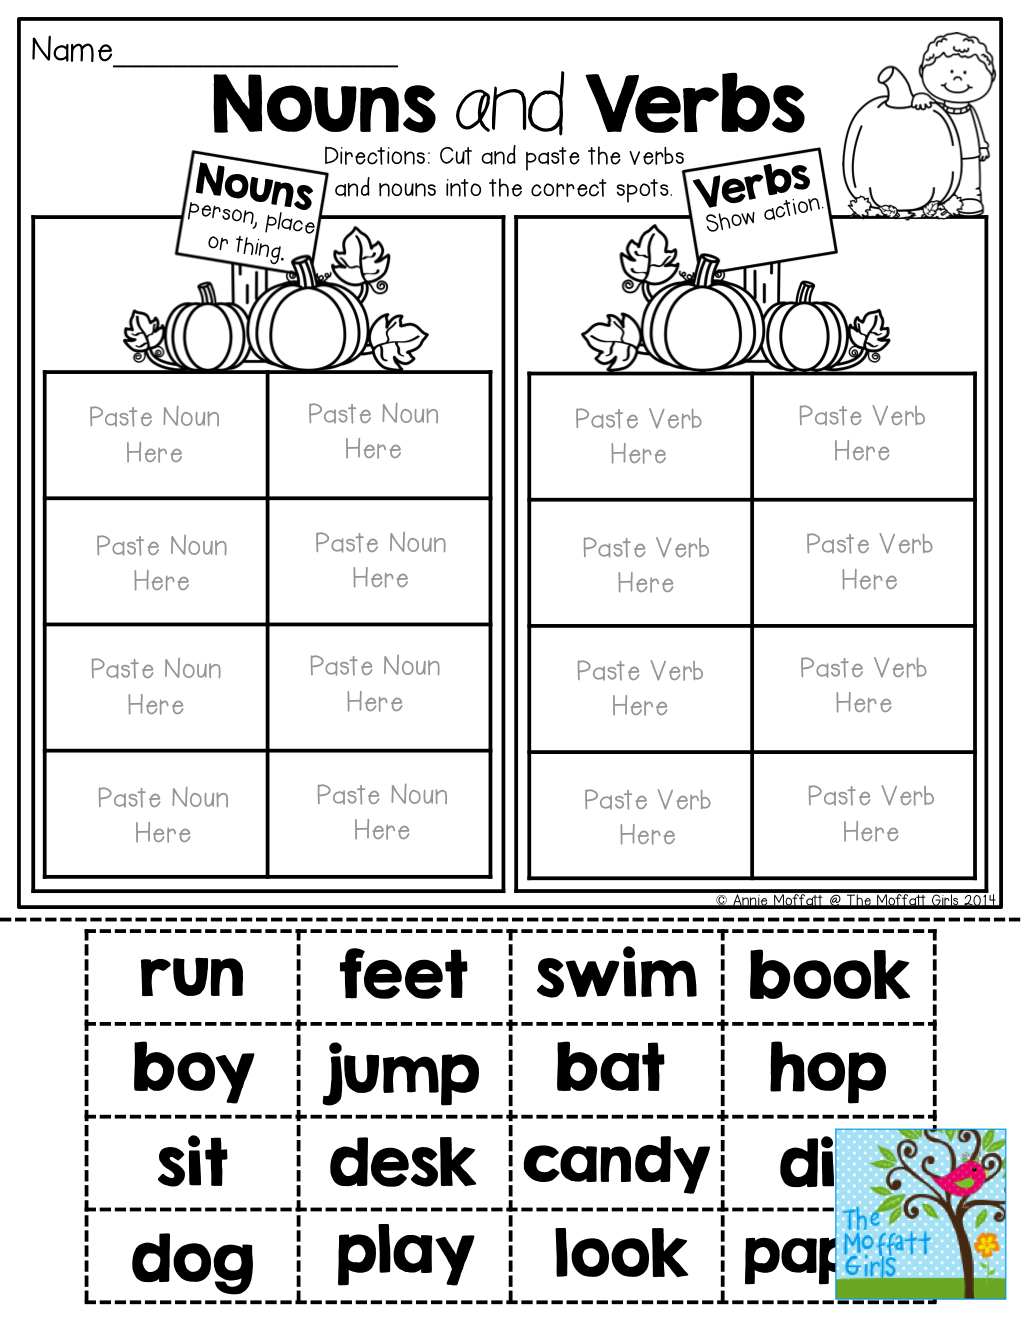 Free Printable Verbs And Nouns Worksheet For Kindergarten